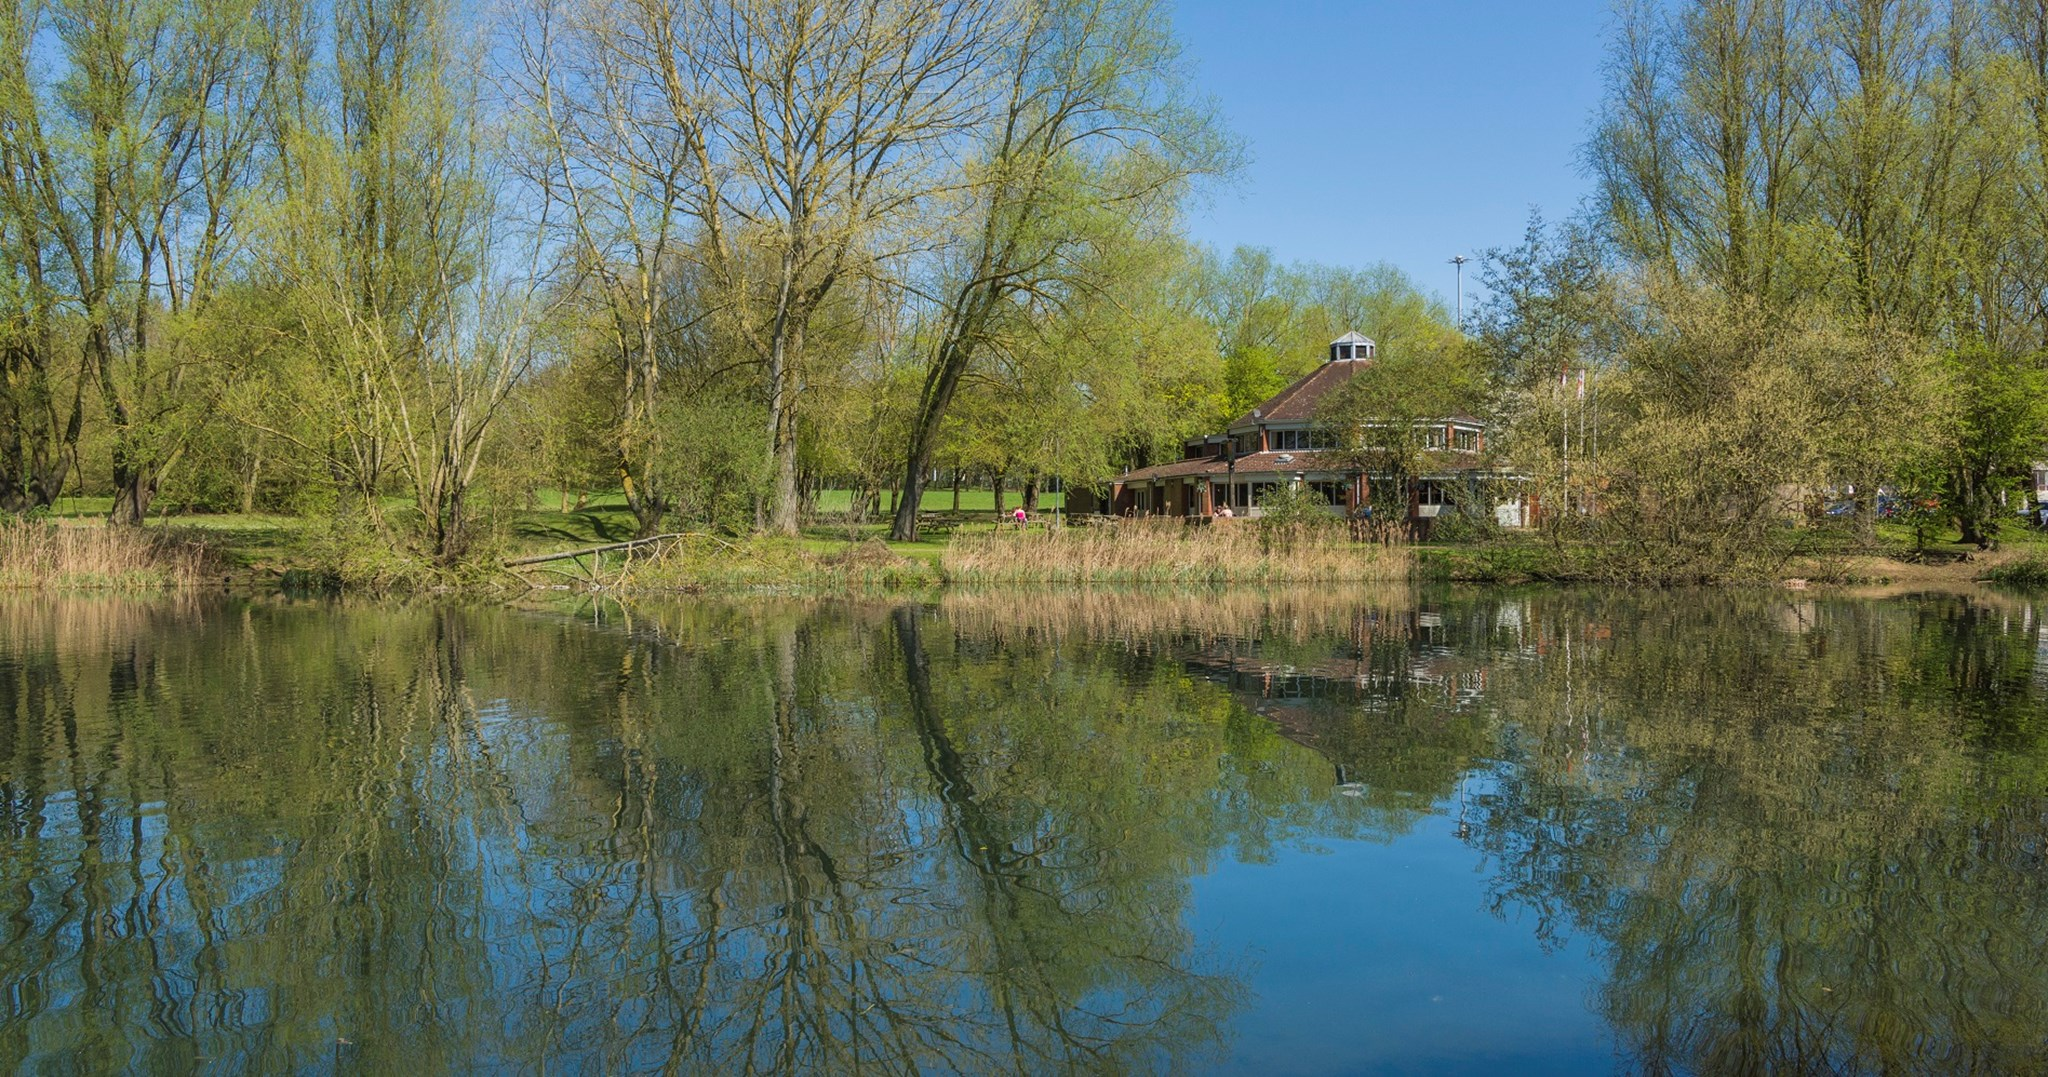 D81_3075Inn on the Lake Mount Farm banner.jpg